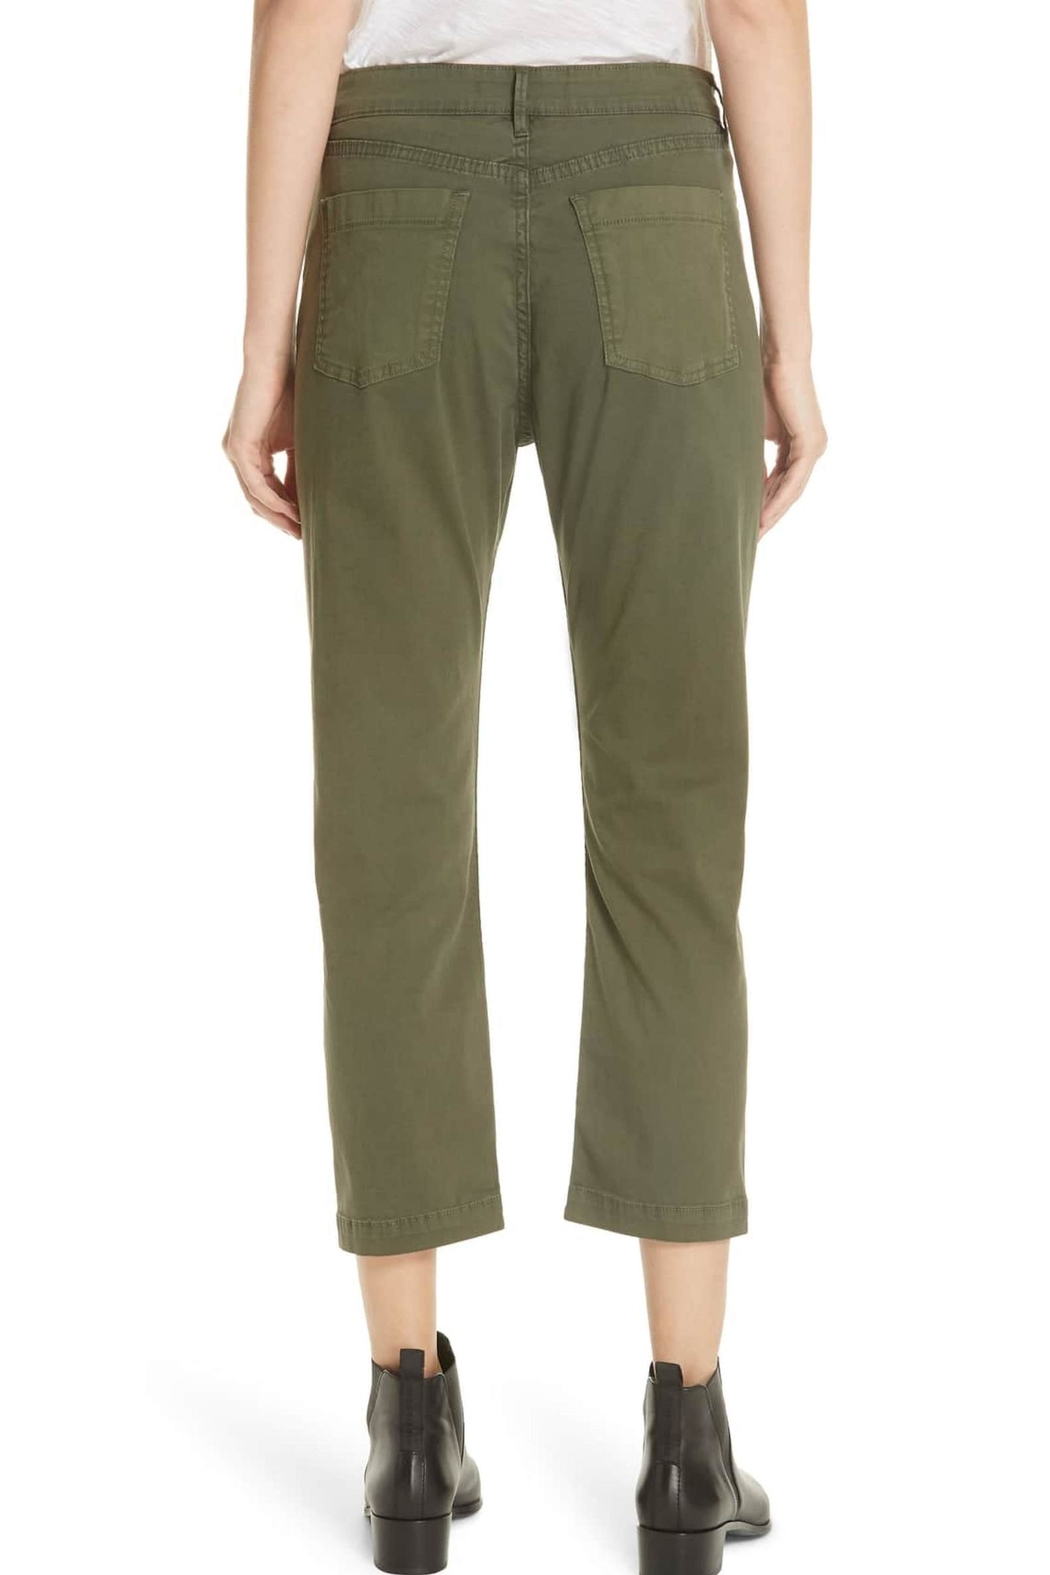 3x1 Sabine Tapered Chino - Front Full Image